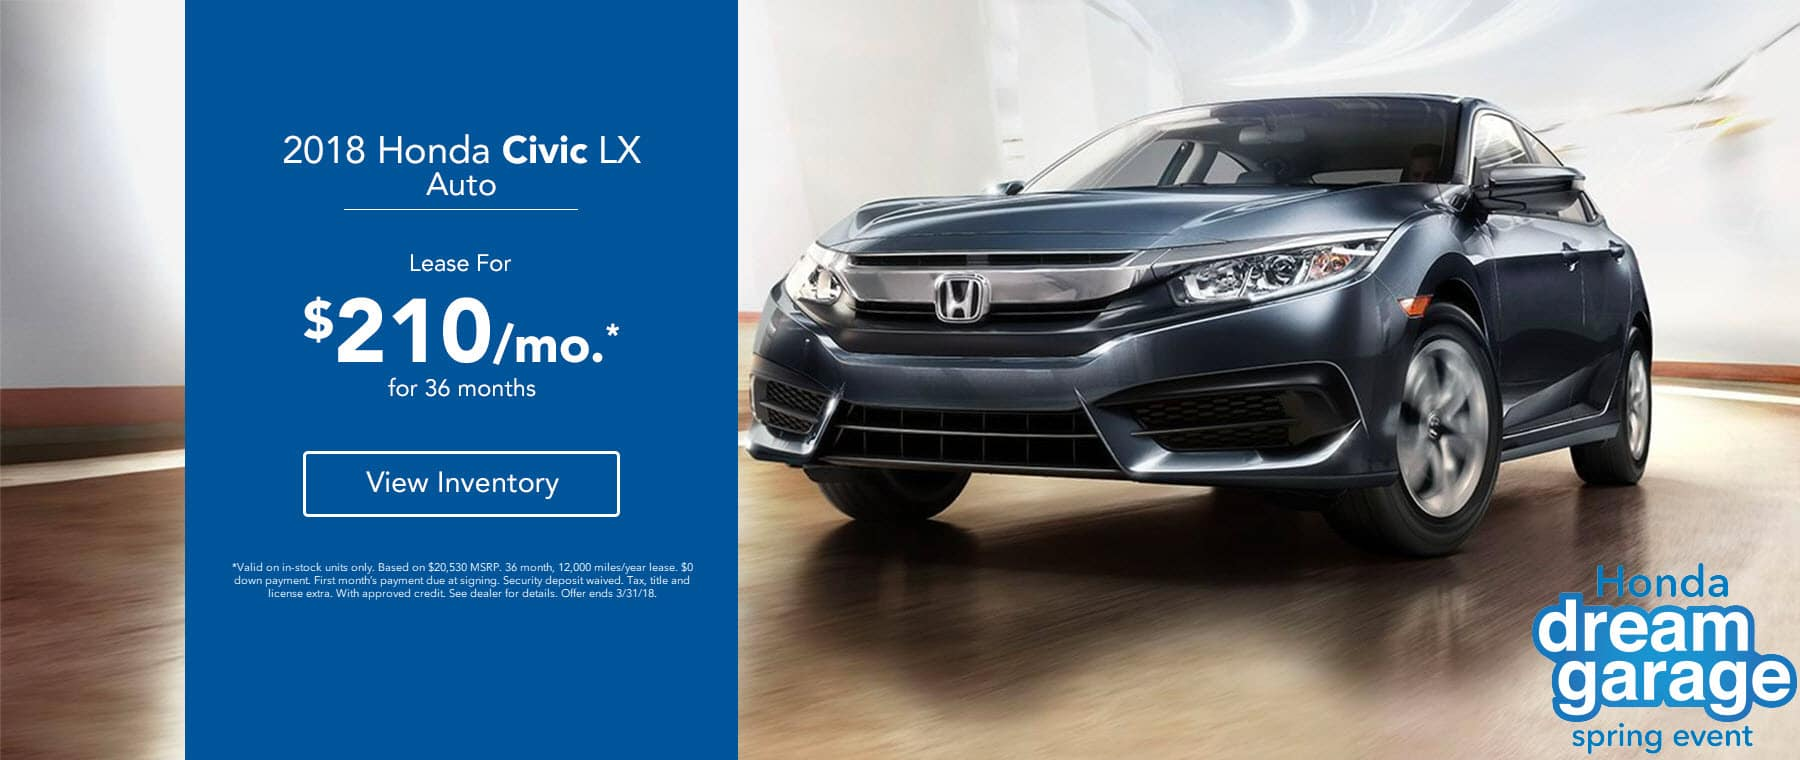 Honda Civic - Lease for $210/mo.